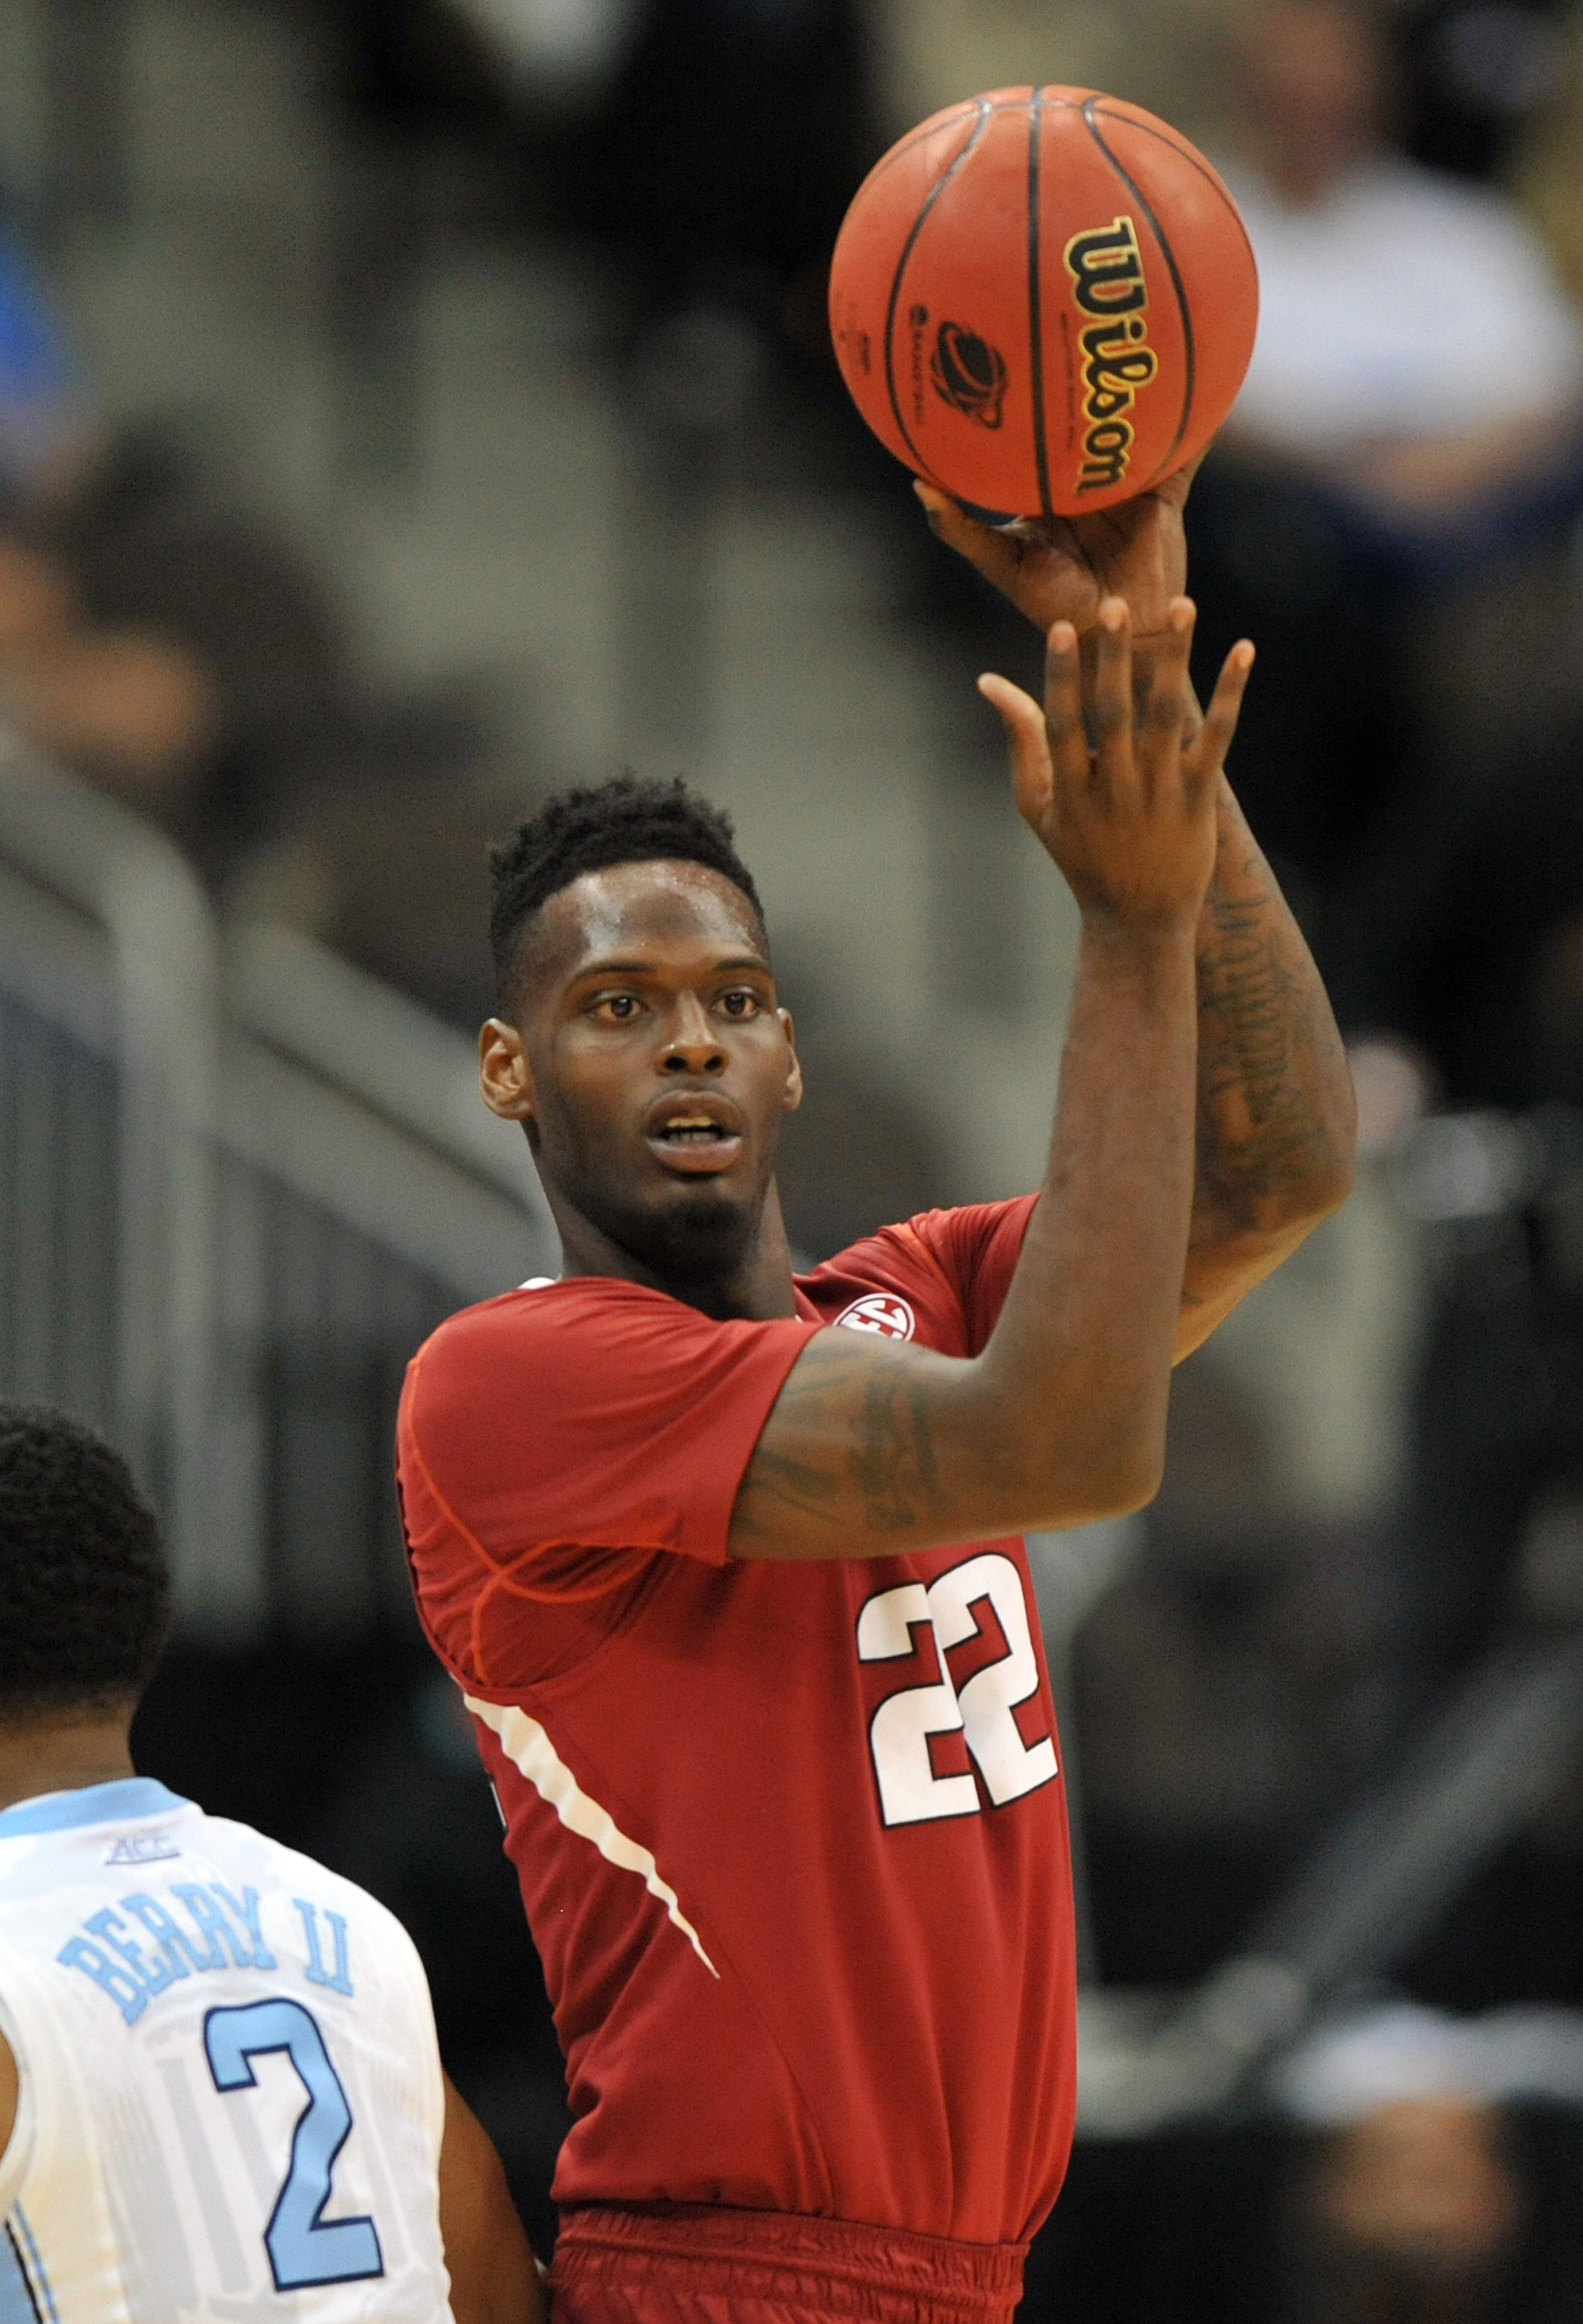 Arkansas forward Jacorey Williams (22) grabs a rebound during the second half of an NCAA tournament third round basketball game against North Carolina Saturday, March 21, 2015, in Jacksonville, Fla.  (AP Photo/Rick Wilson)